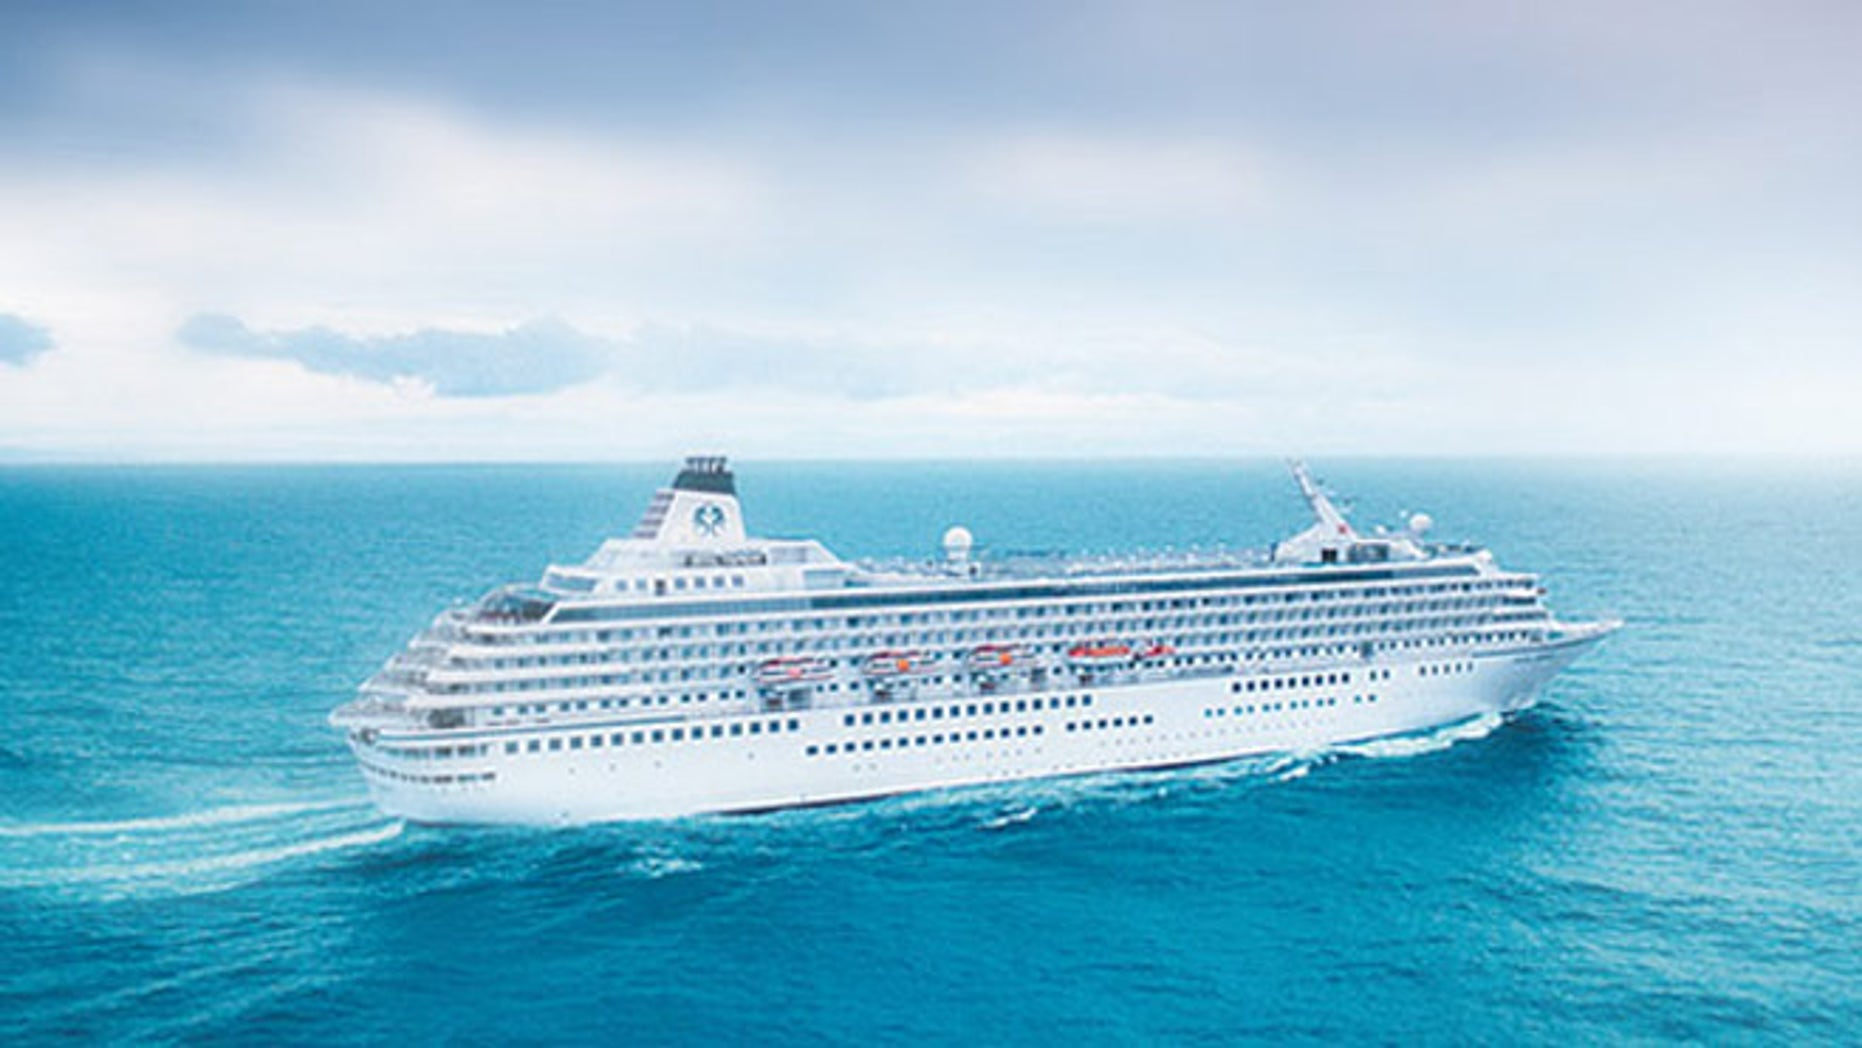 The one-percenters' singles cruise will be held on Crystal Cruise Line's Serenity.